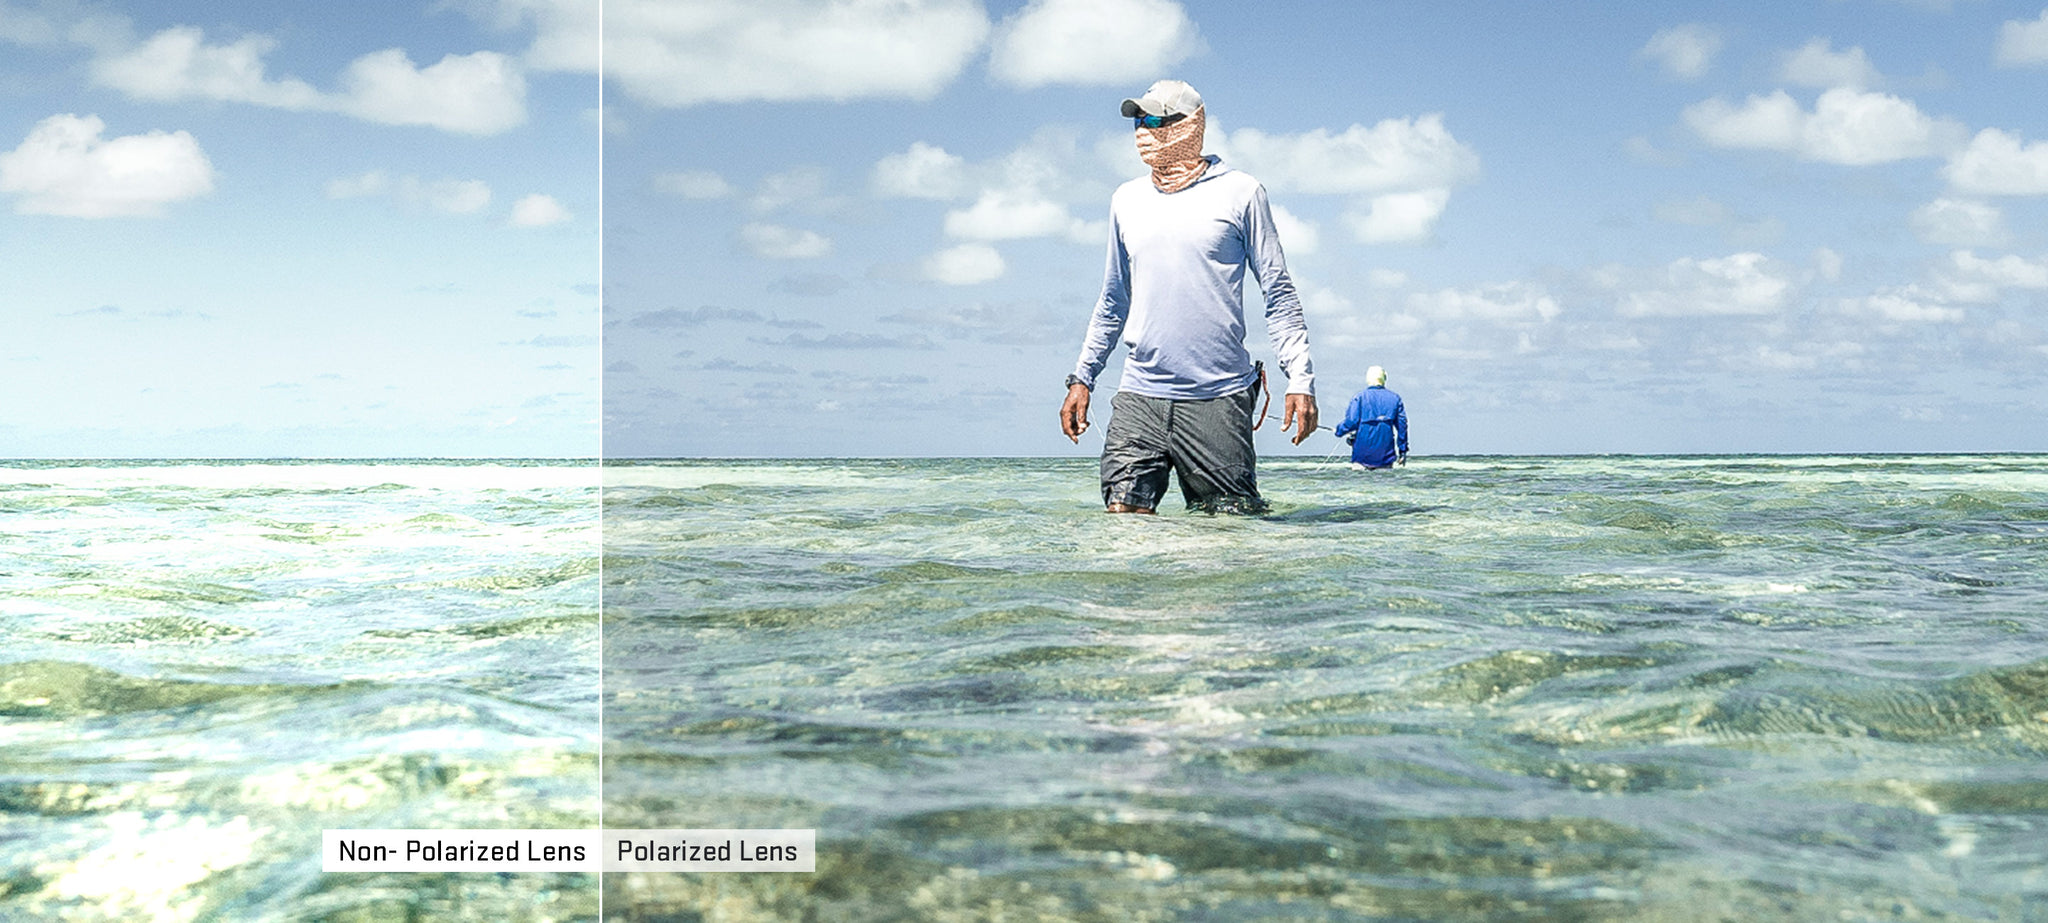 Comparing the view you see looking at water while using non-polarized vs polarized lenses